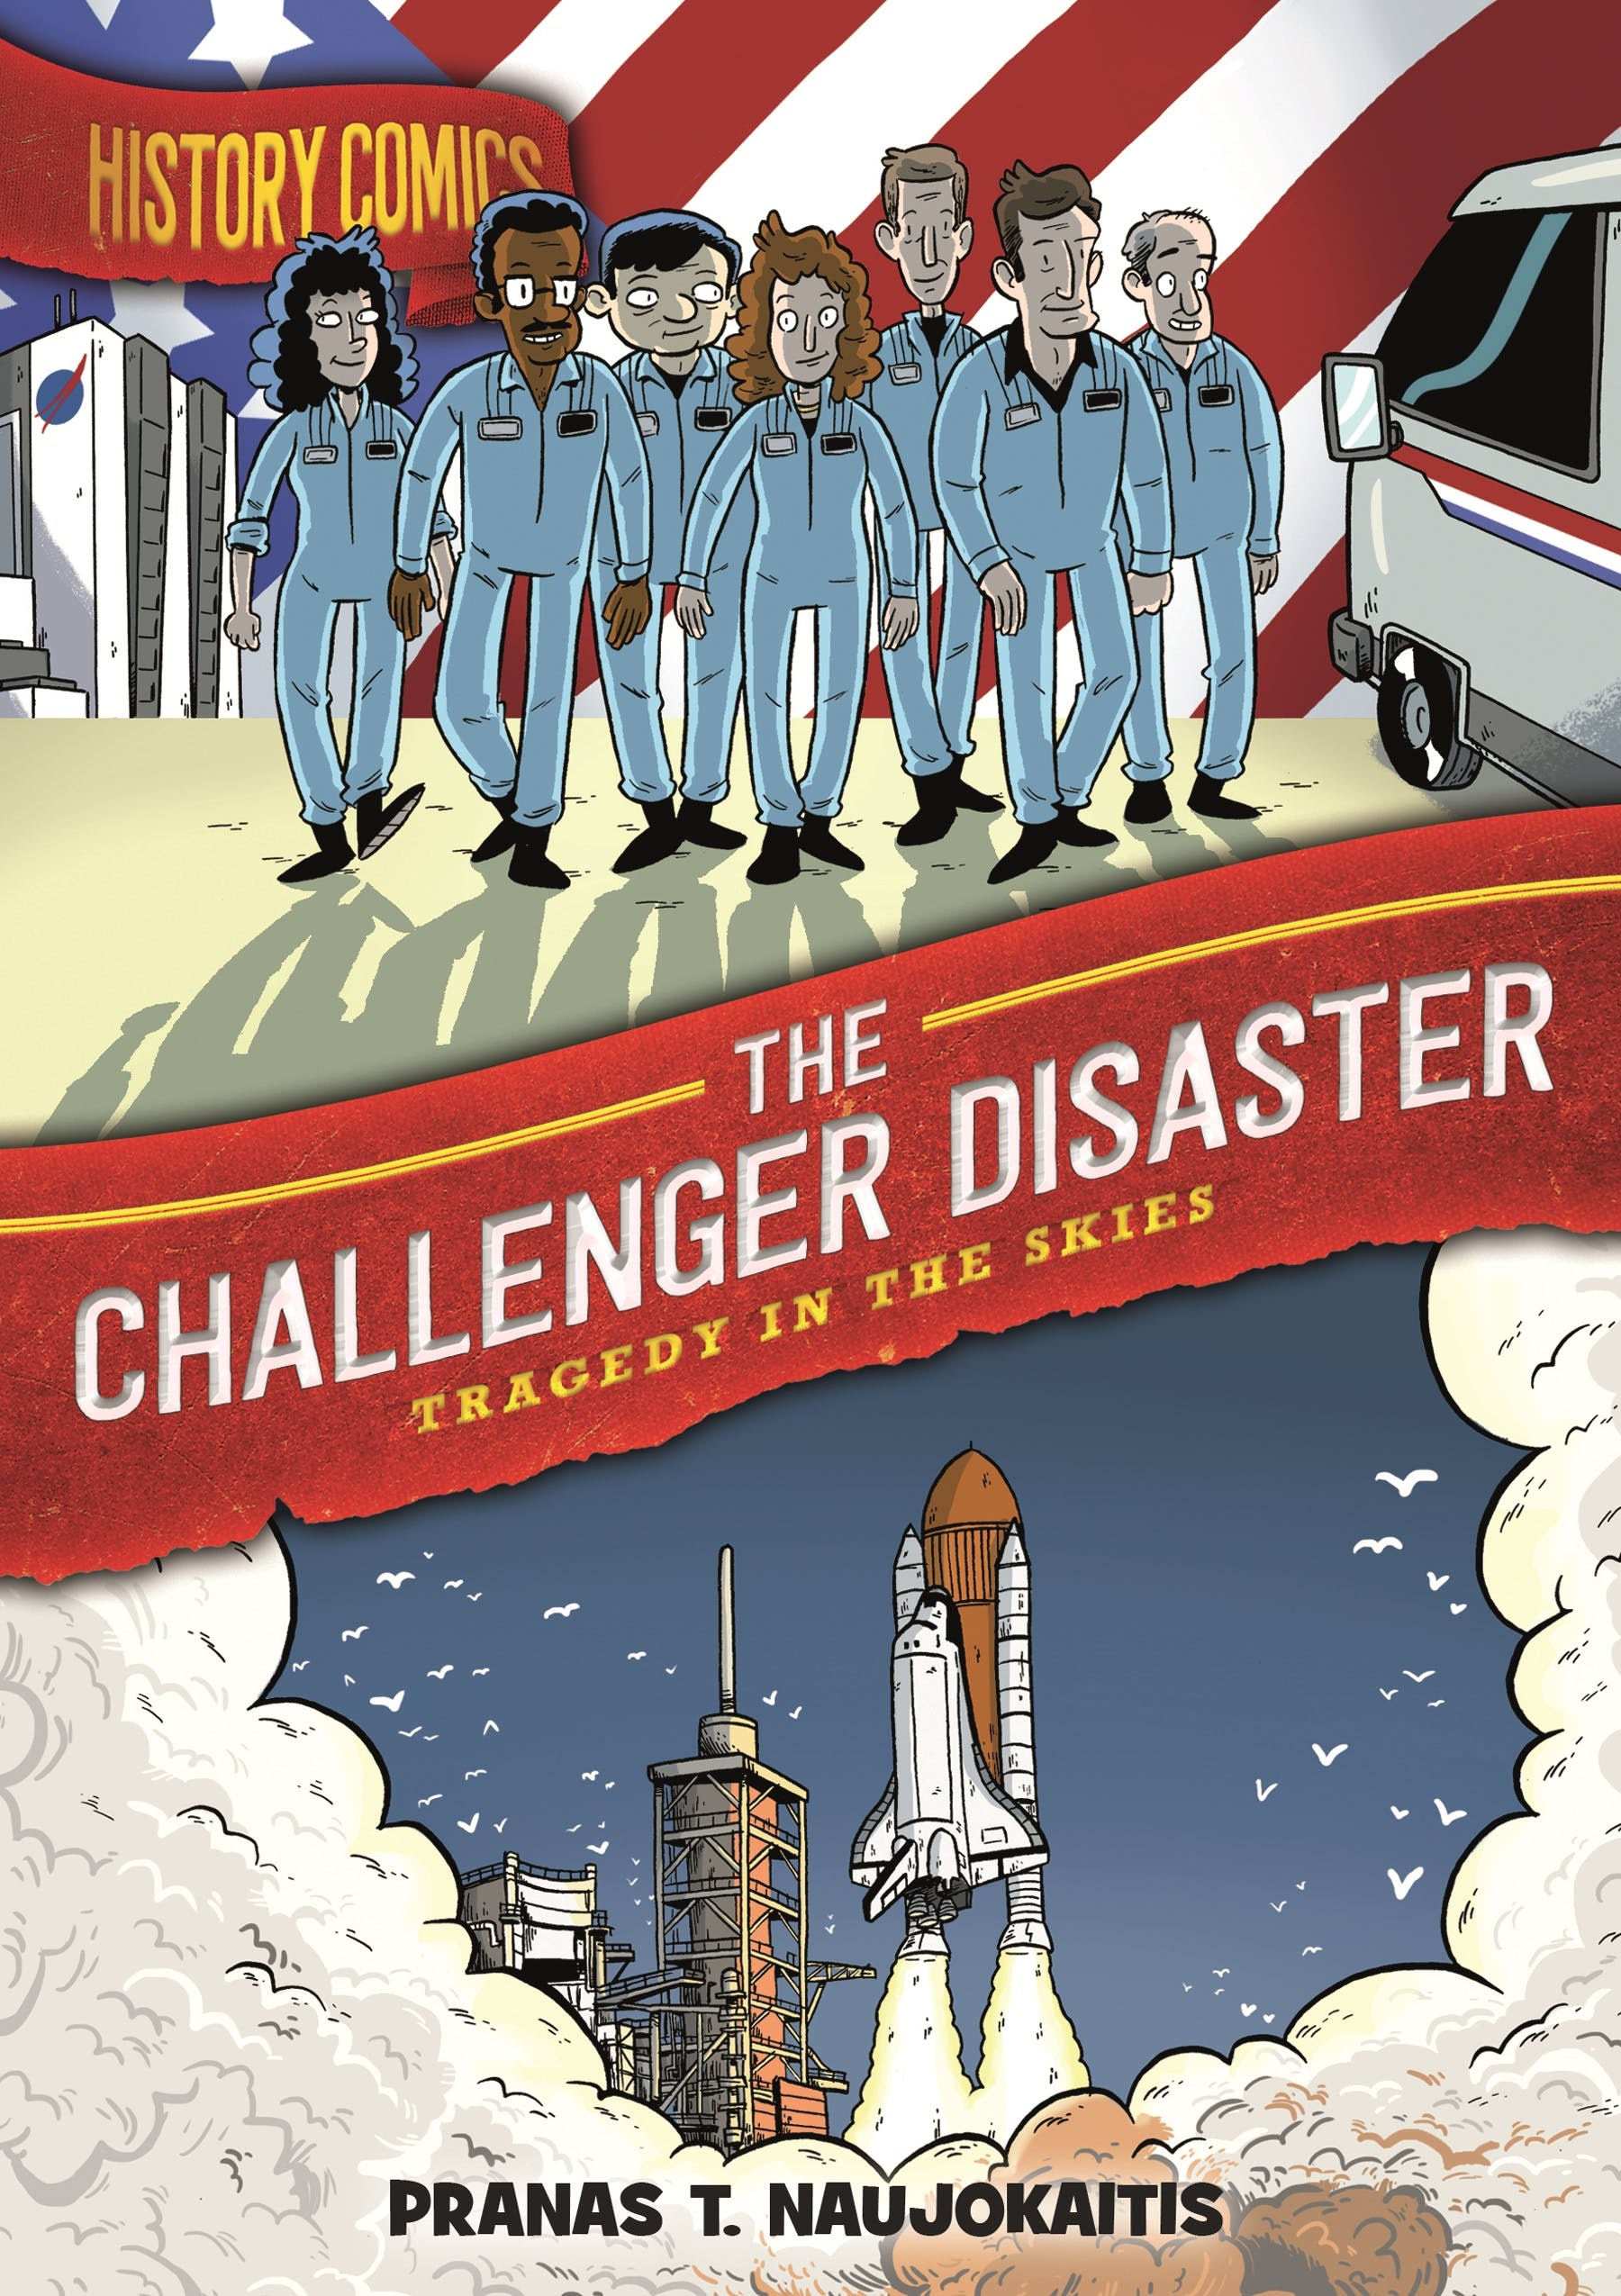 Image of History Comics: The Challenger Disaster